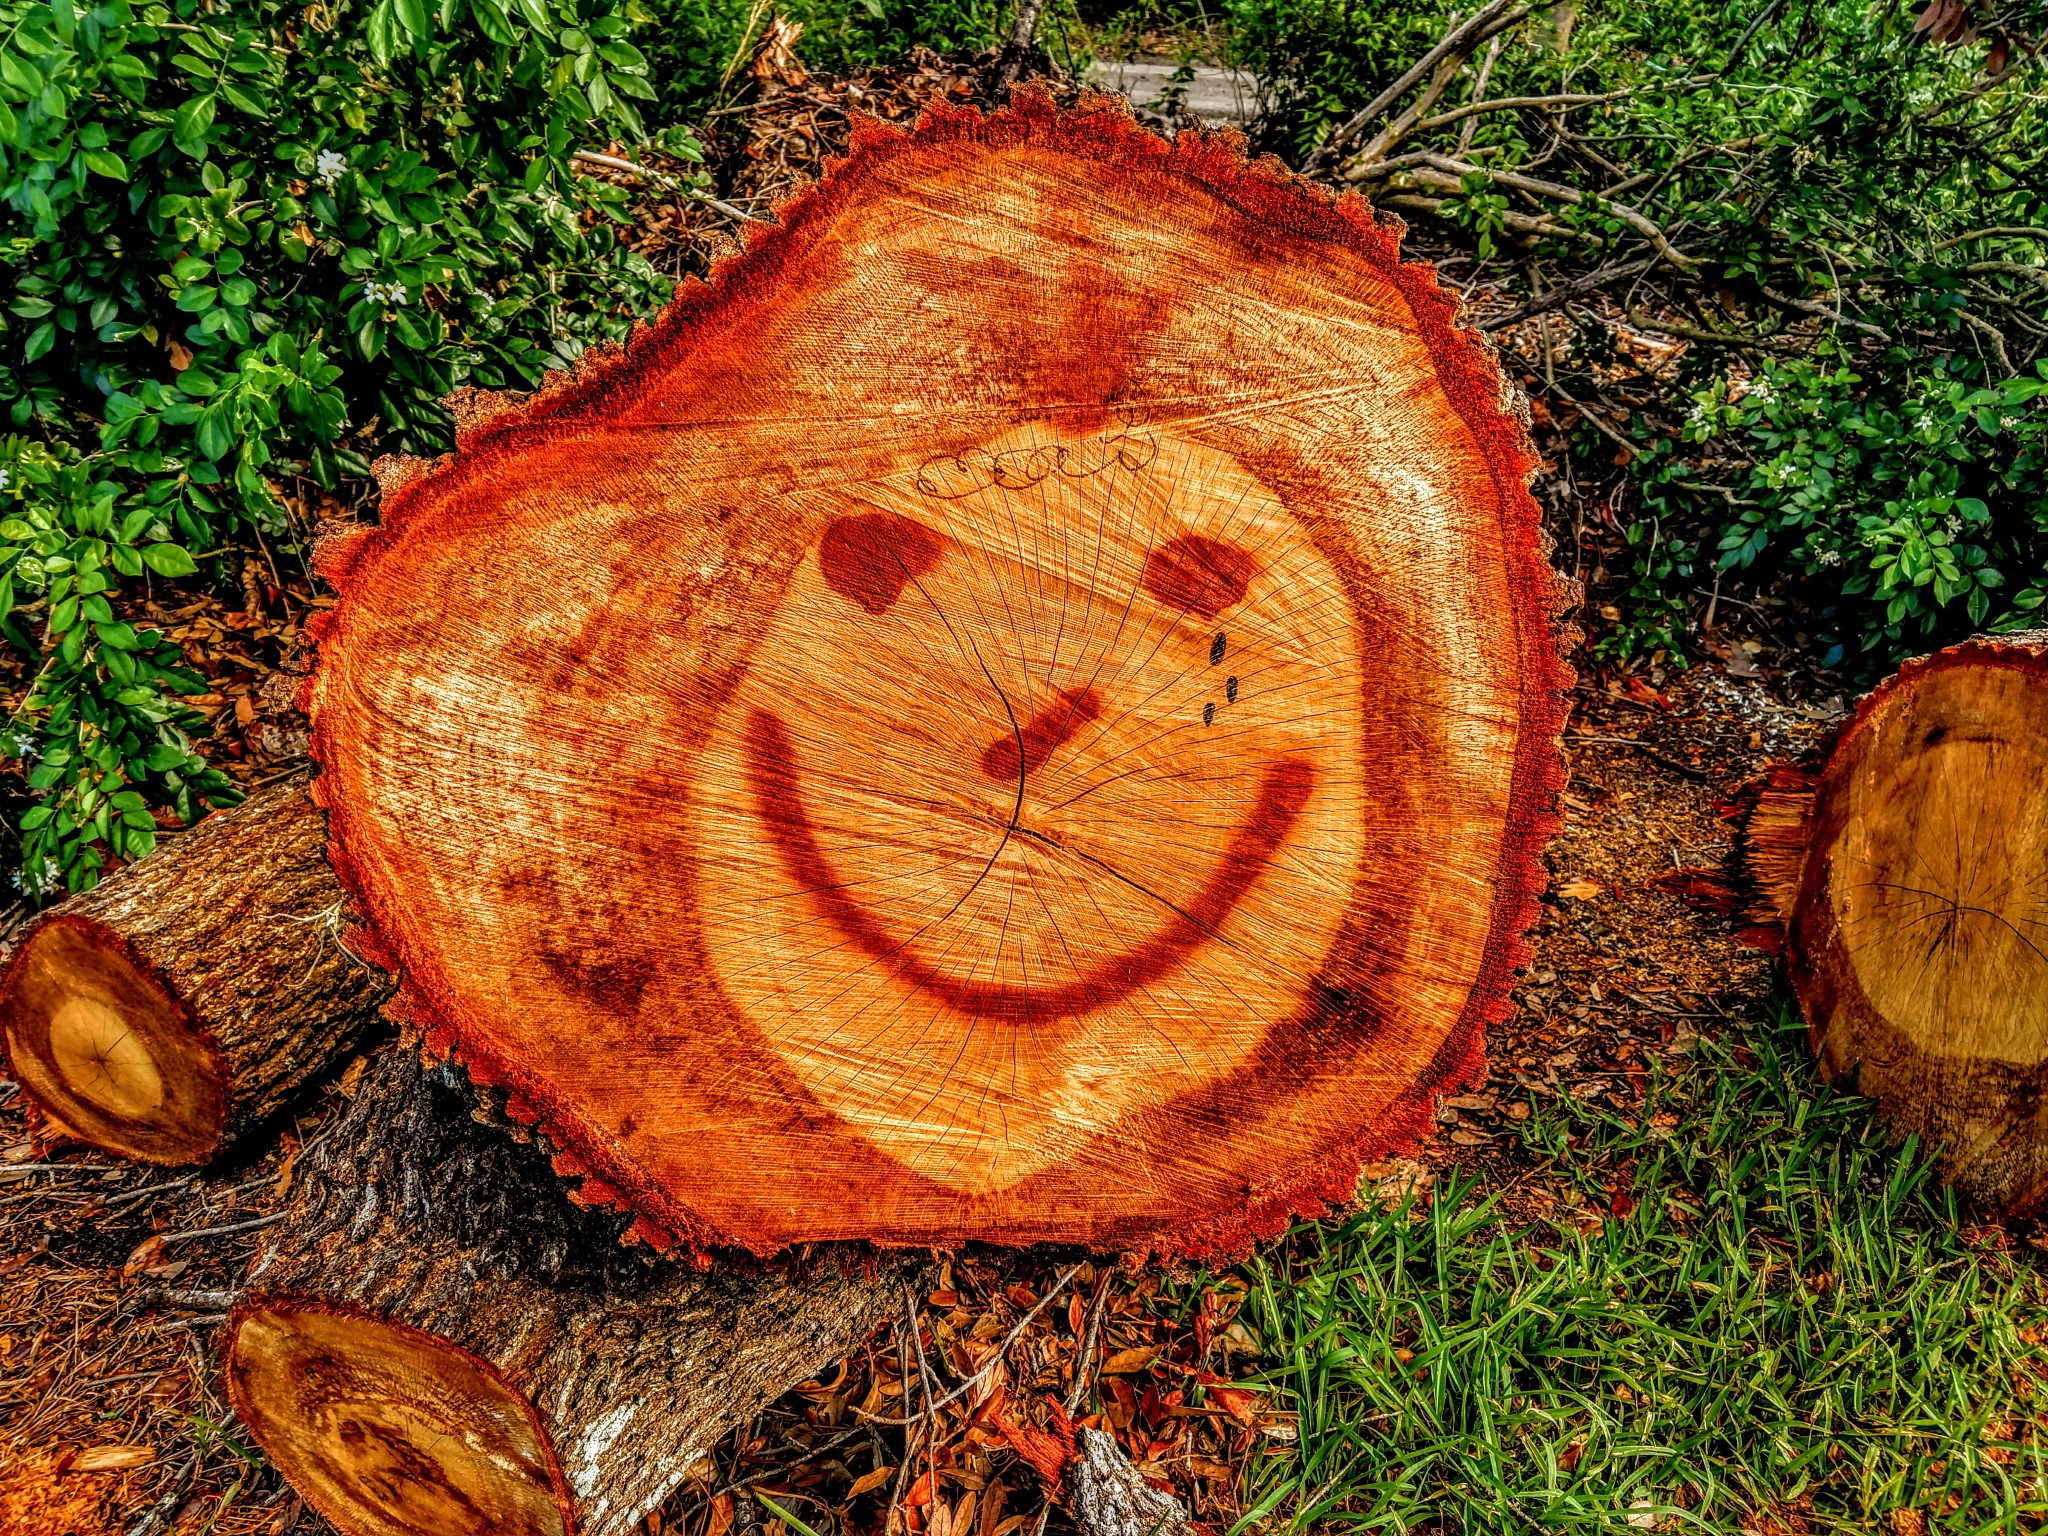 Smiley Face by Todd